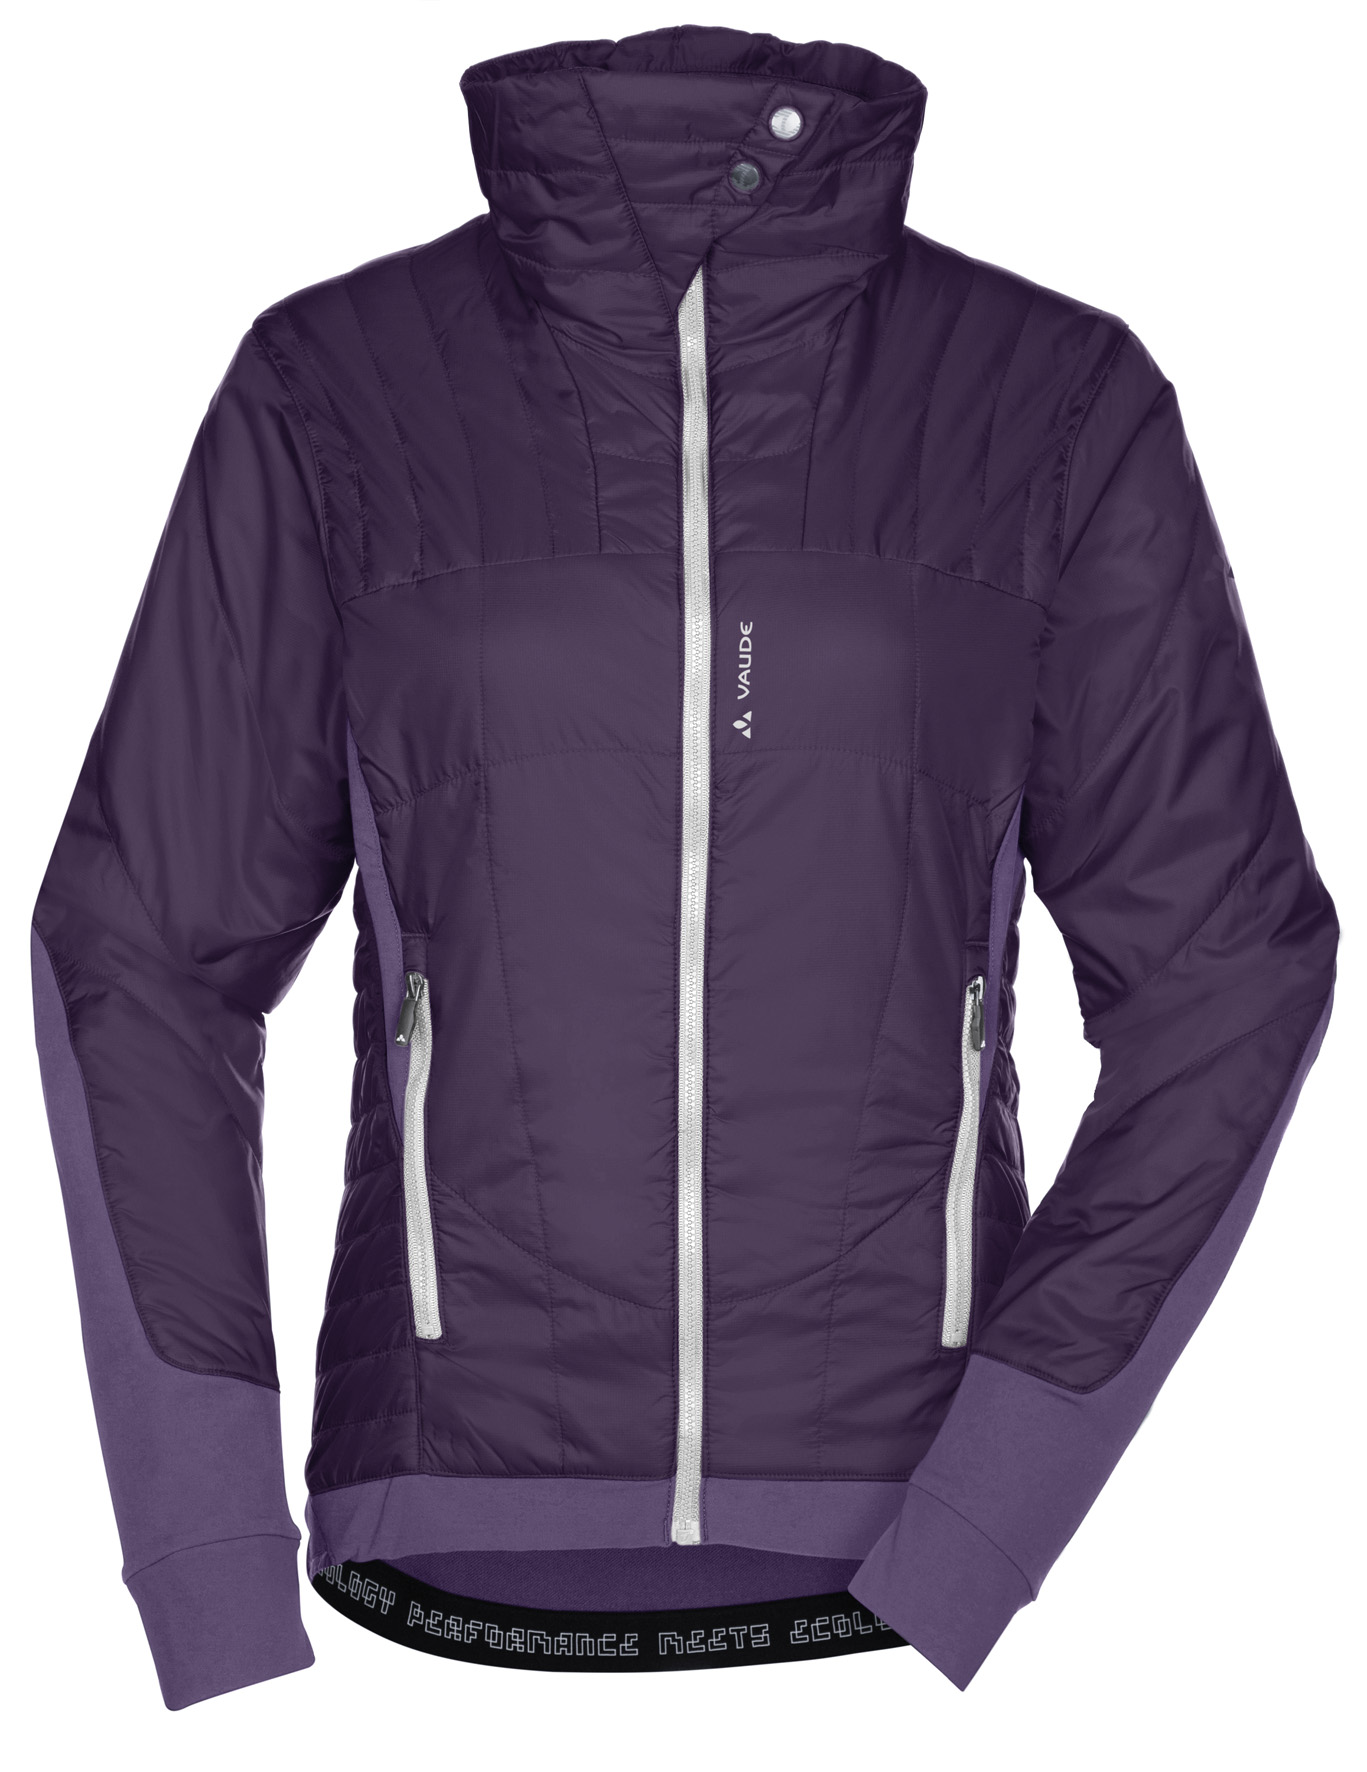 VAUDE Women´s Minaki Jacket elderberry Größe 36 - schneider-sports